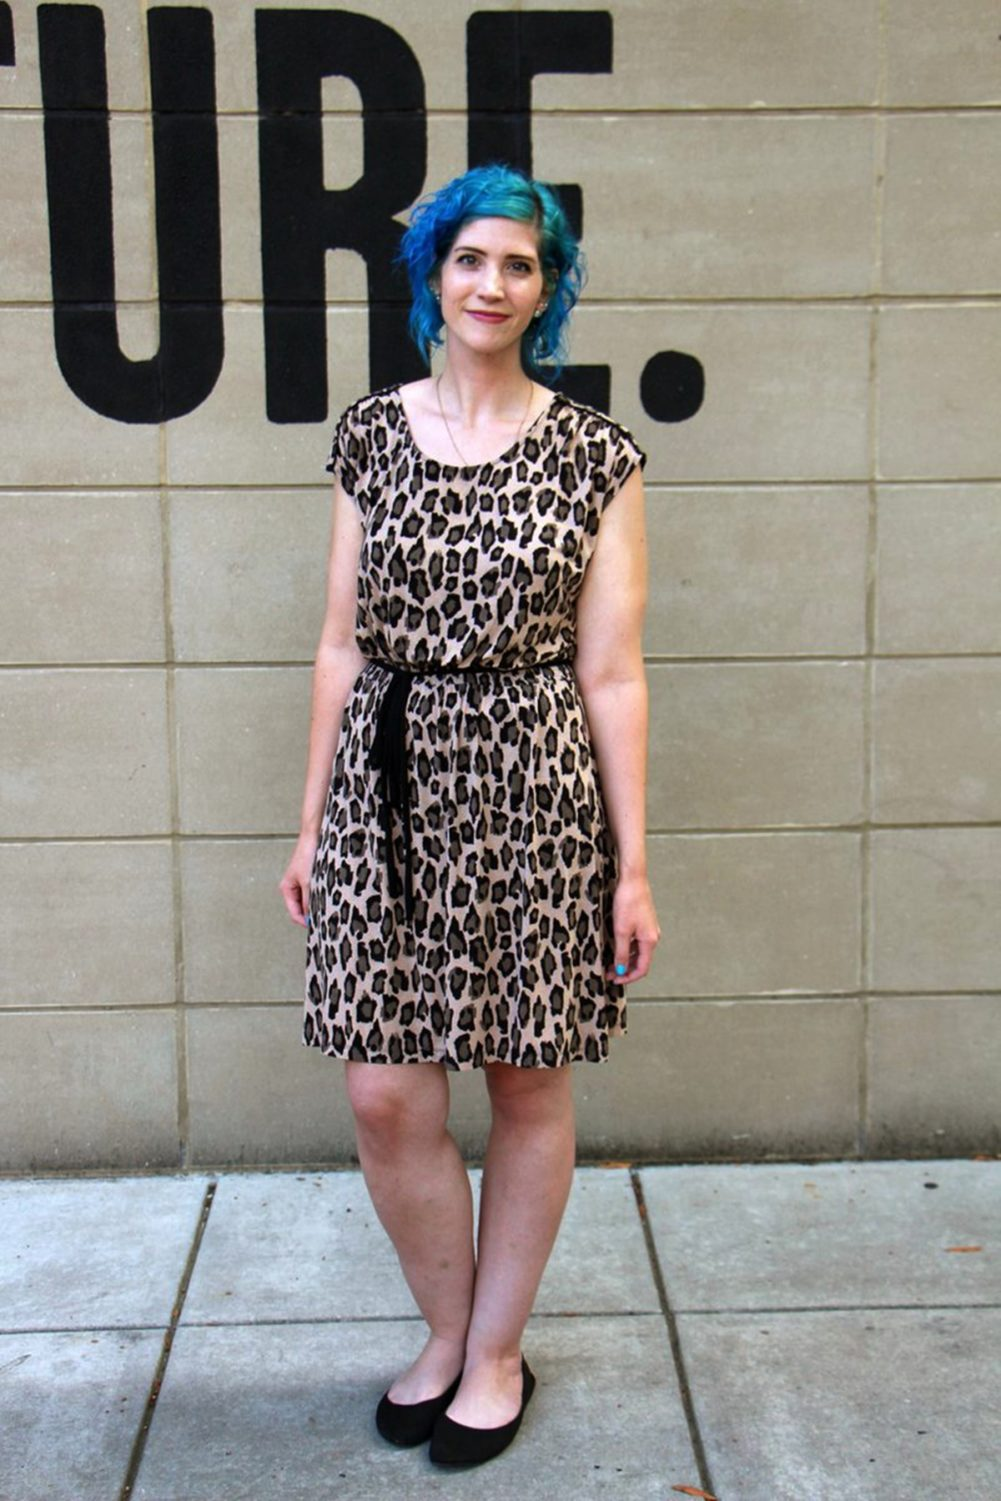 Outfit: leopard print dress, sky blue curly hair, black flats